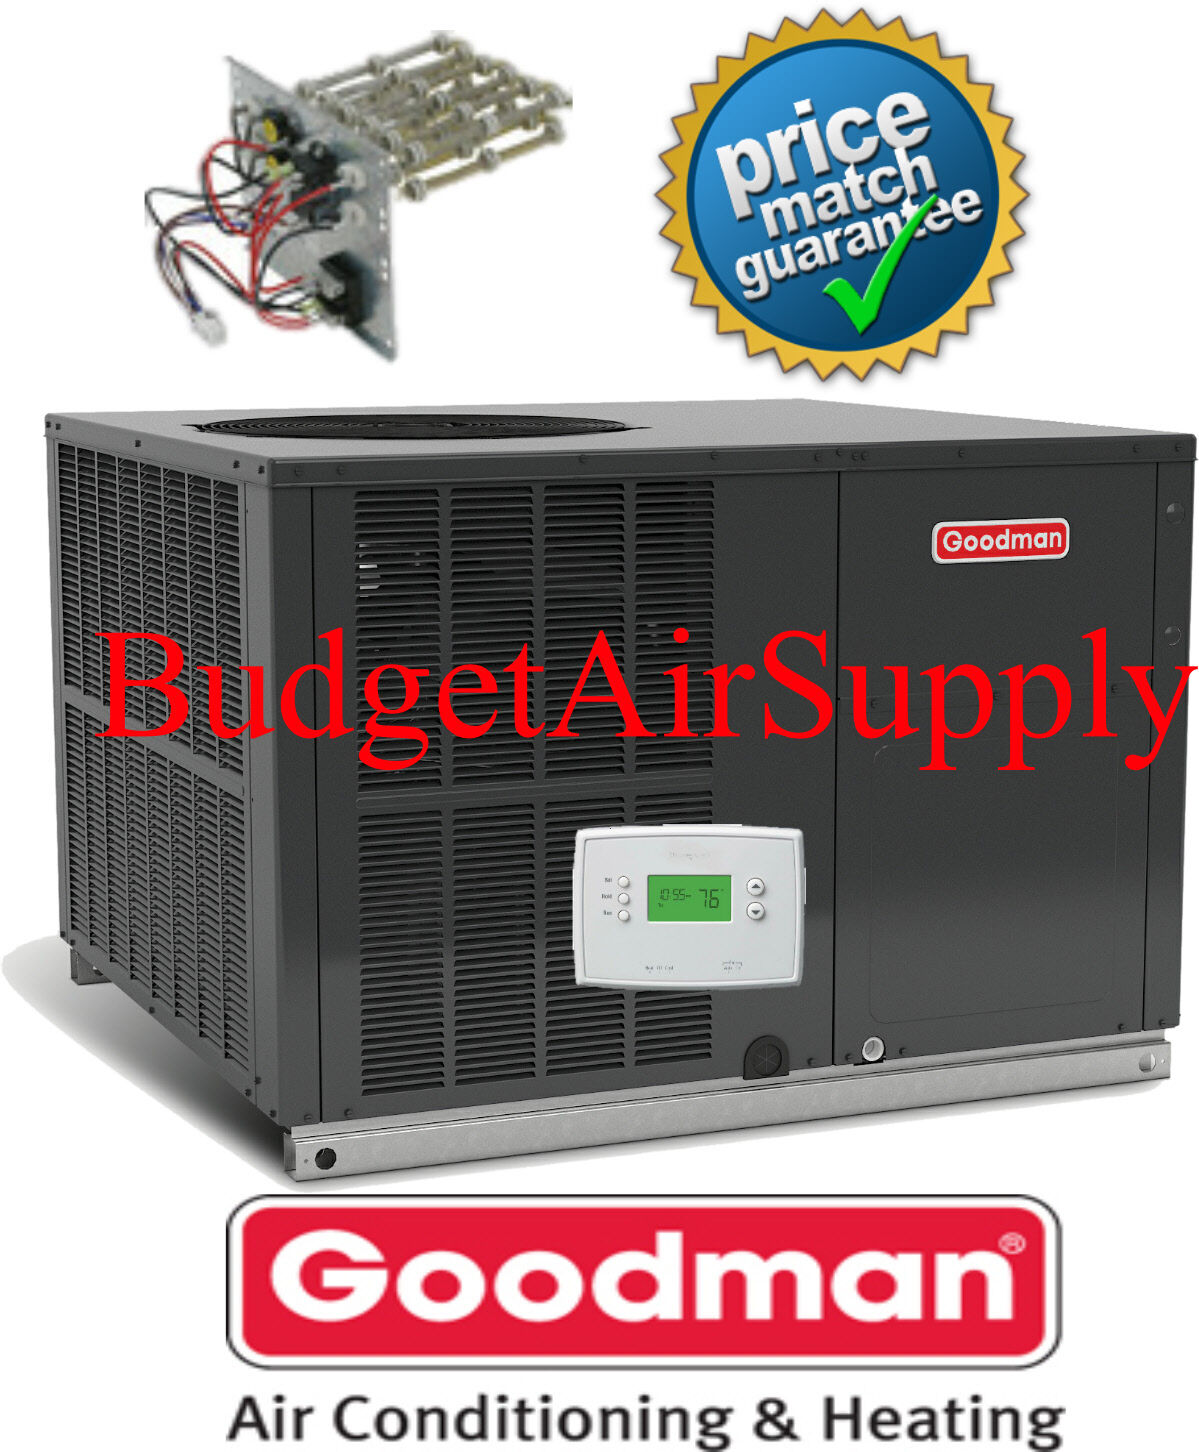 goodman 4 ton ac. Picture 1 Of 4 Goodman Ton Ac 8